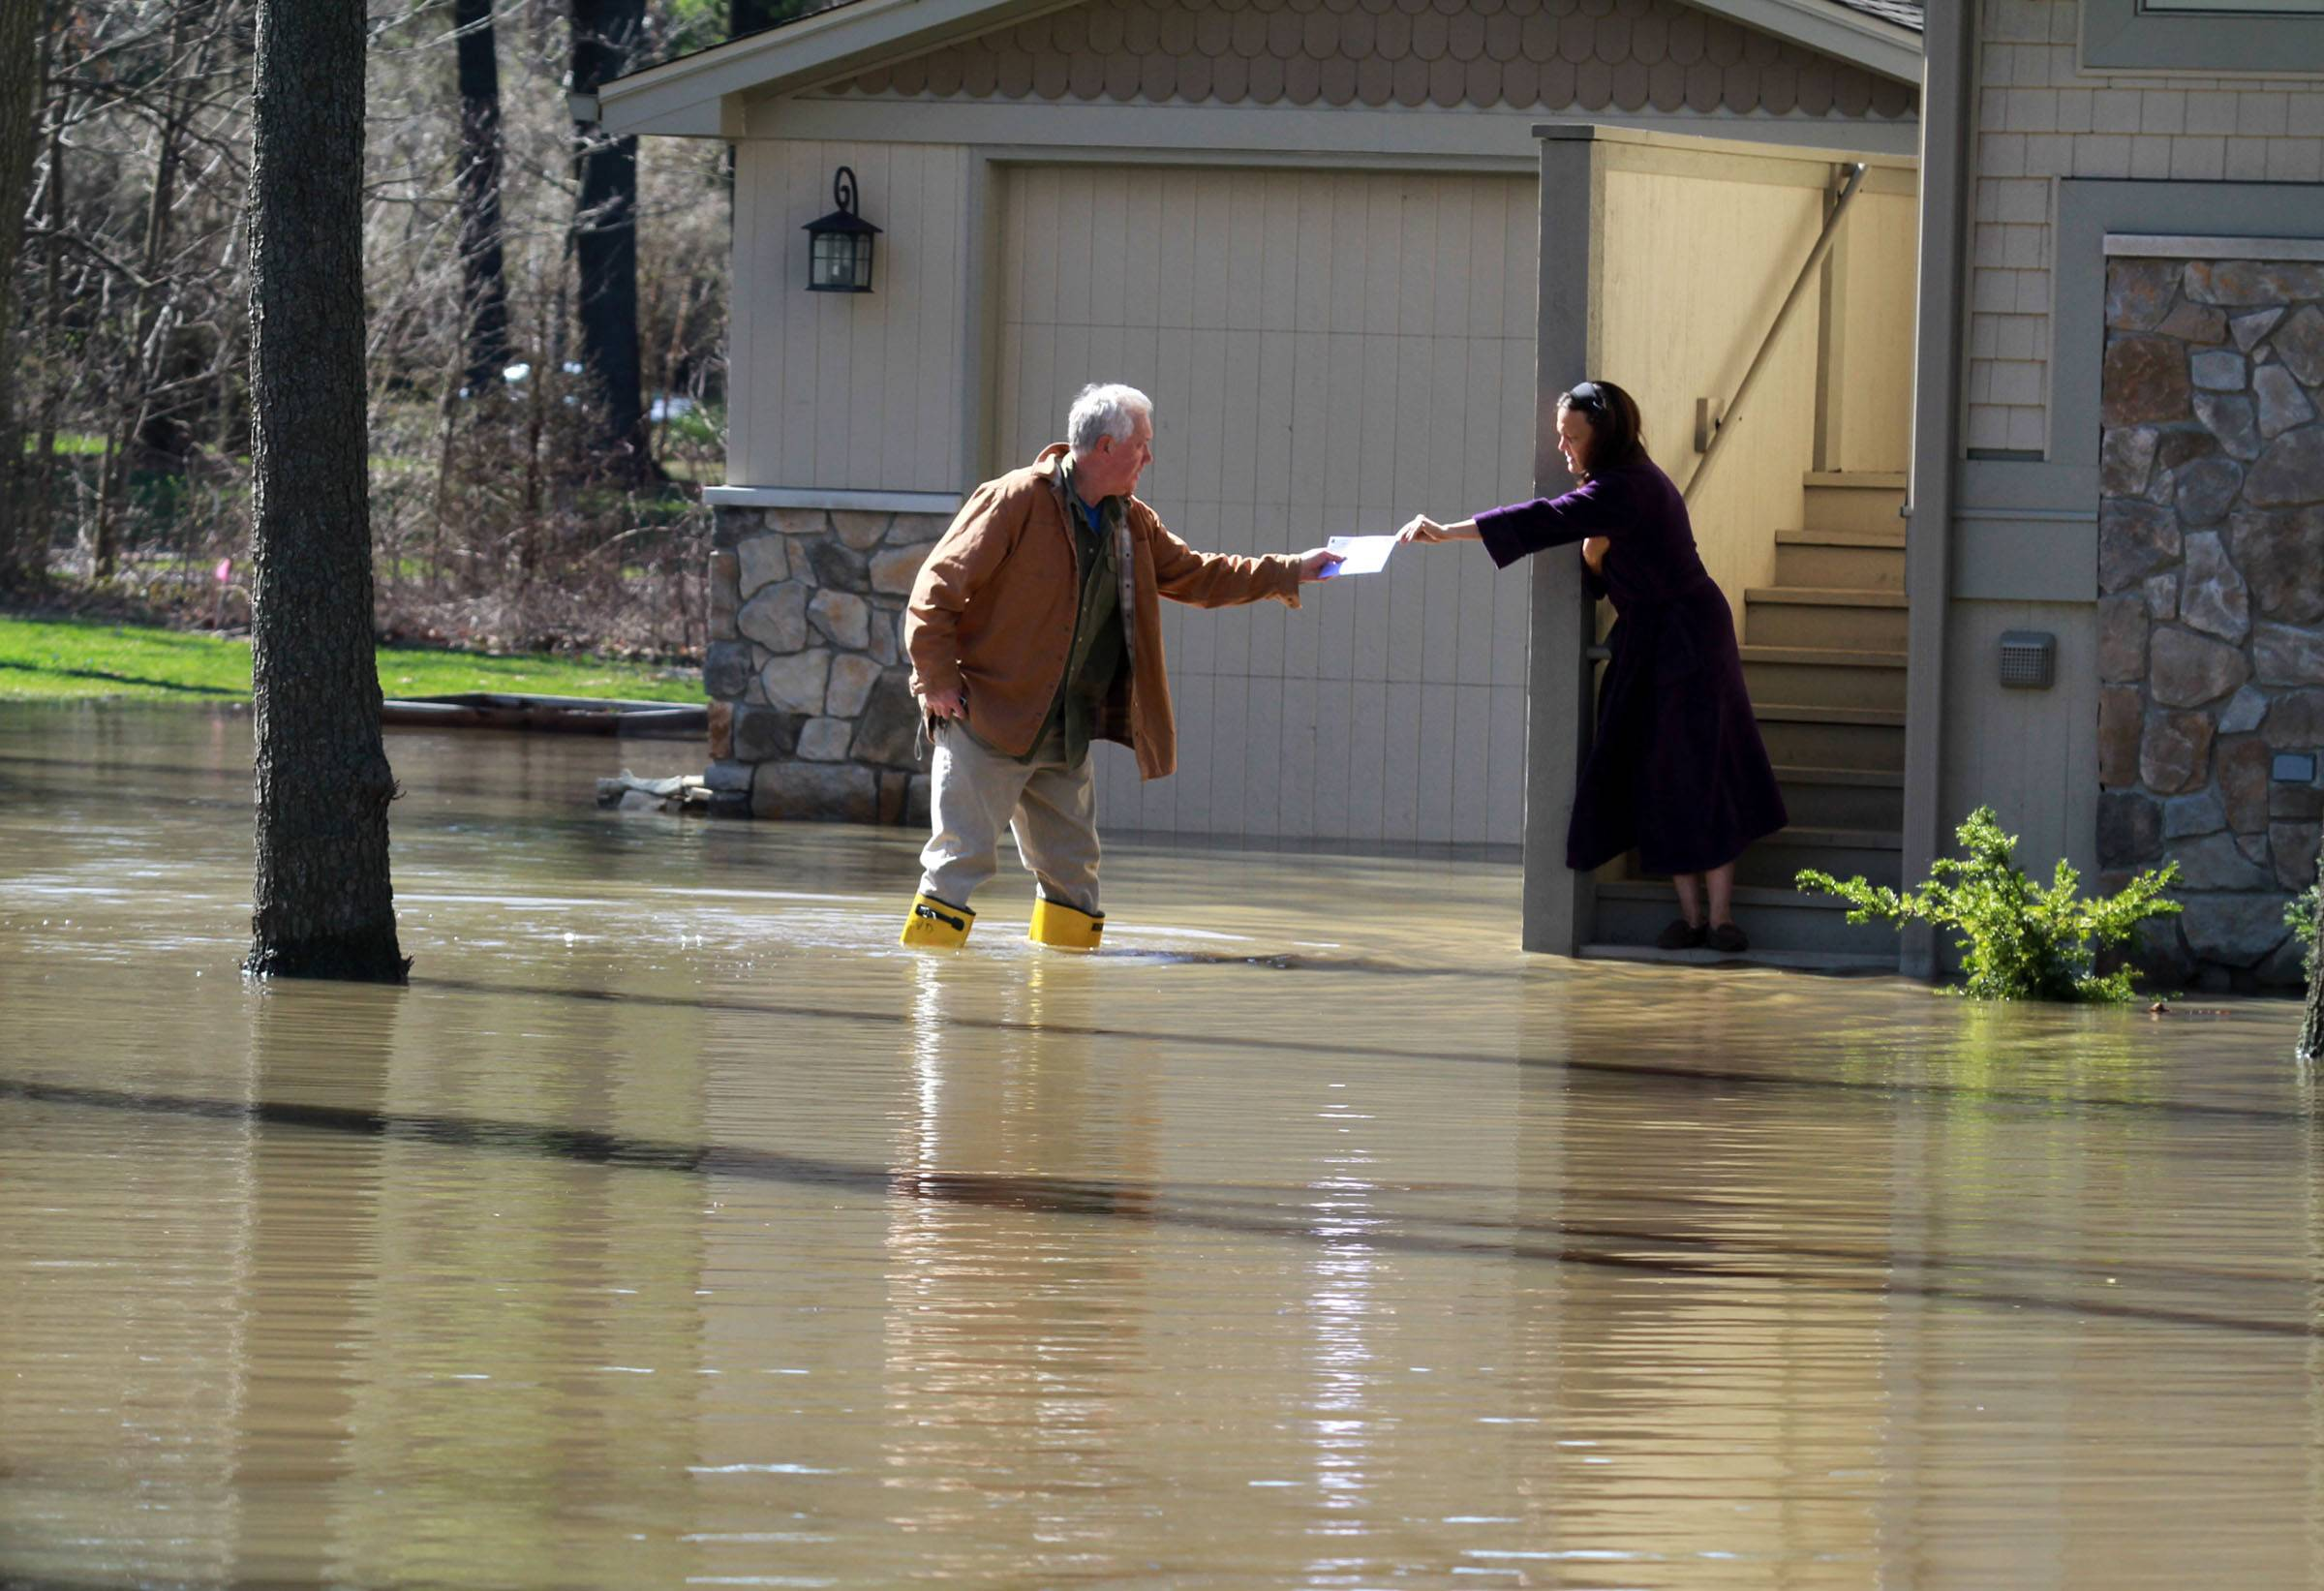 George LeClaire/gleclaire@dailyherald.com\Michelle VanDuynhoven gives her husband, John, a letter to mail at the bottom of the steps to their home on Stonegate Circle in Lincolnshire on April 20, 2013. John said there was no water in their house because they rebuilt it higher up in 2010.